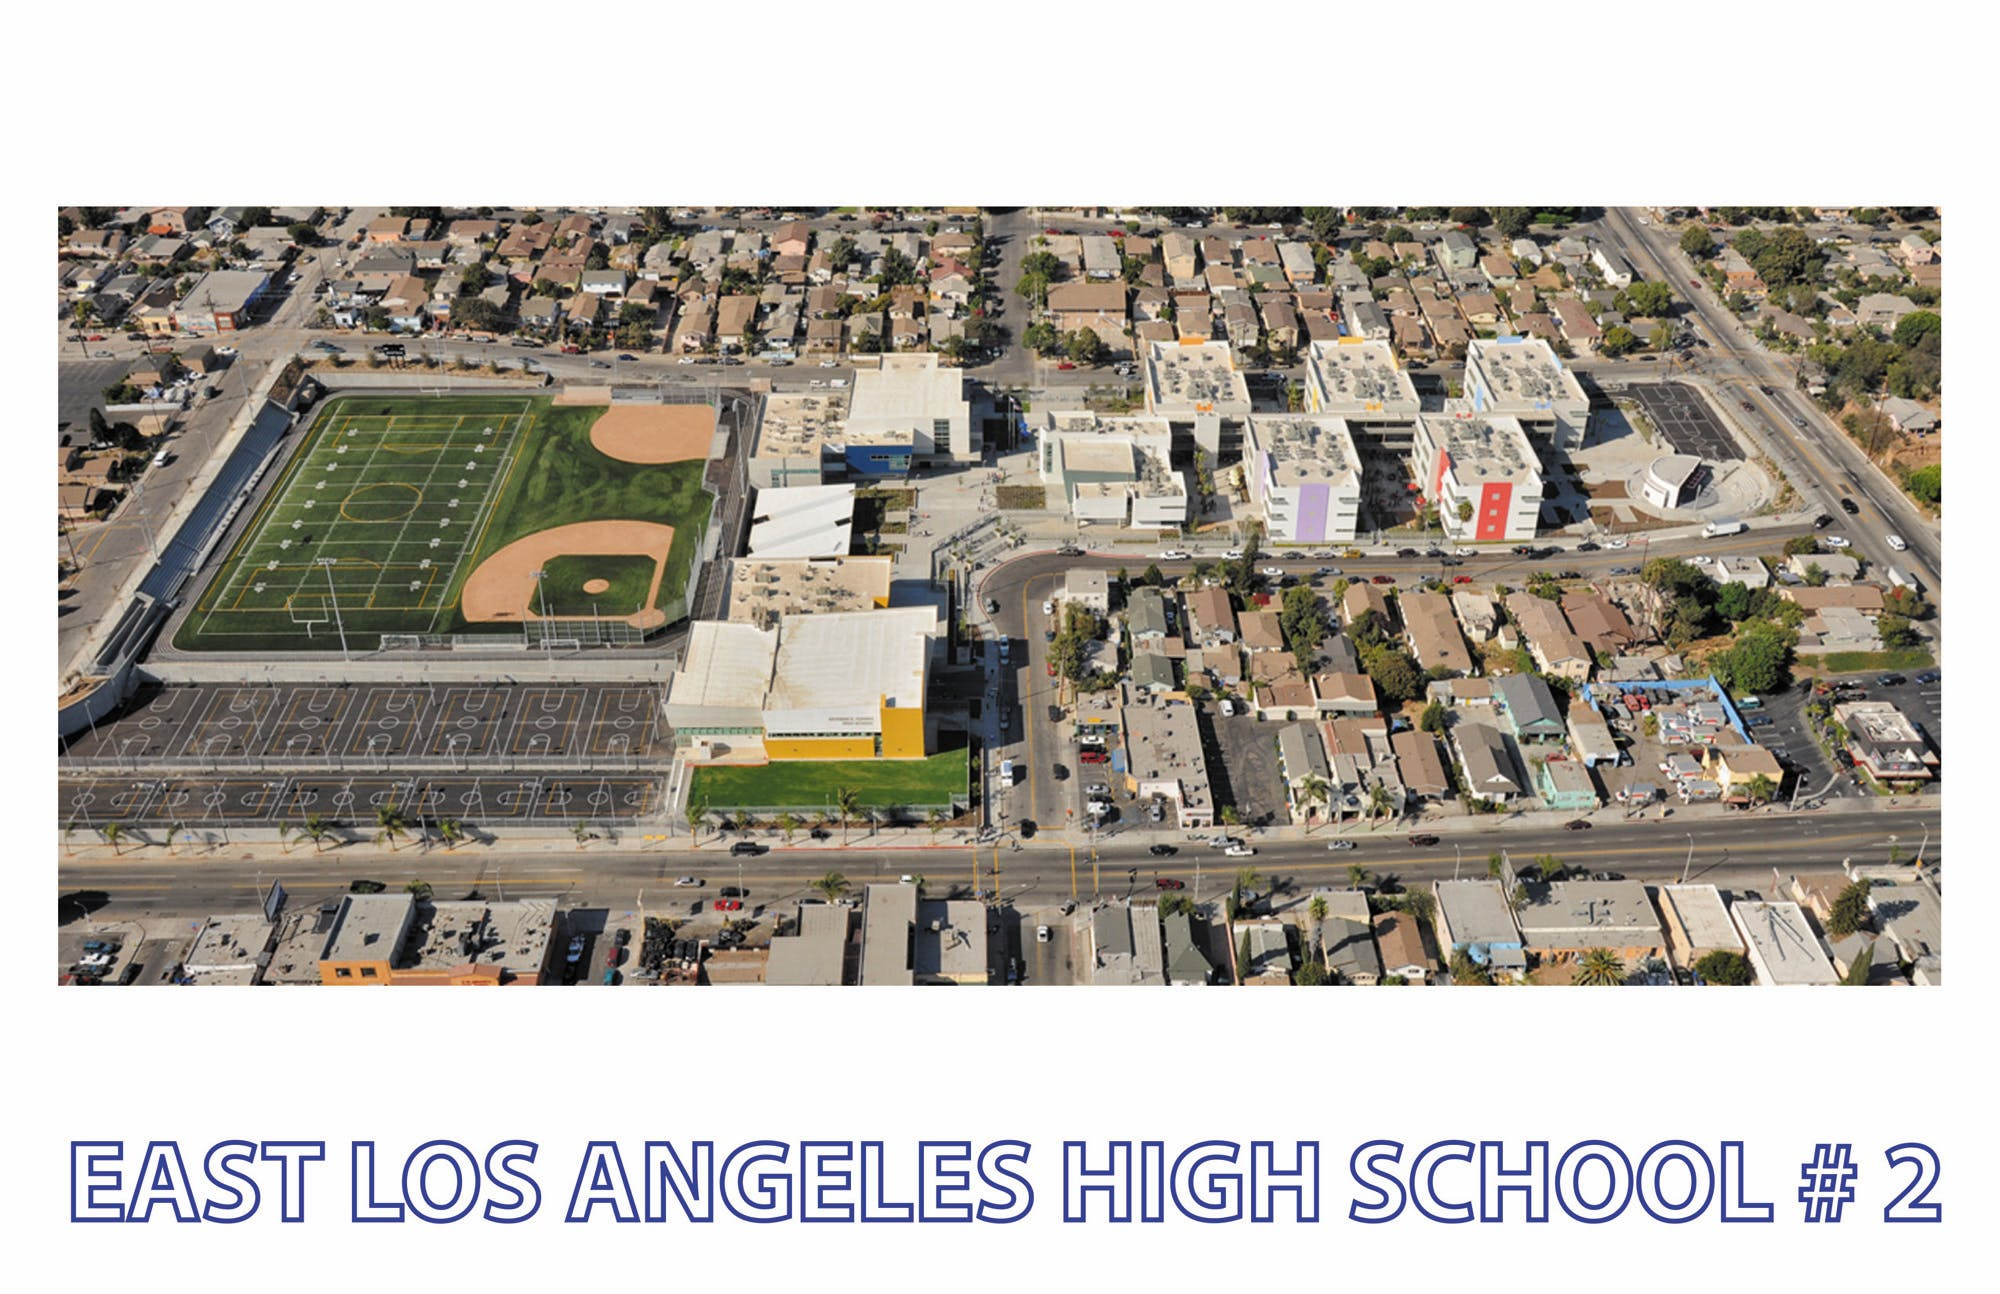 East Los Angeles High #2 | Steven Hong | Archinect East Los Angeles on jaime escalante, city terrace, los feliz, los angeles county, south los angeles, orange county, salton city, garfield high school, boyle heights, south gate, downtown los angeles, american me, monterey park, california, silver lake,